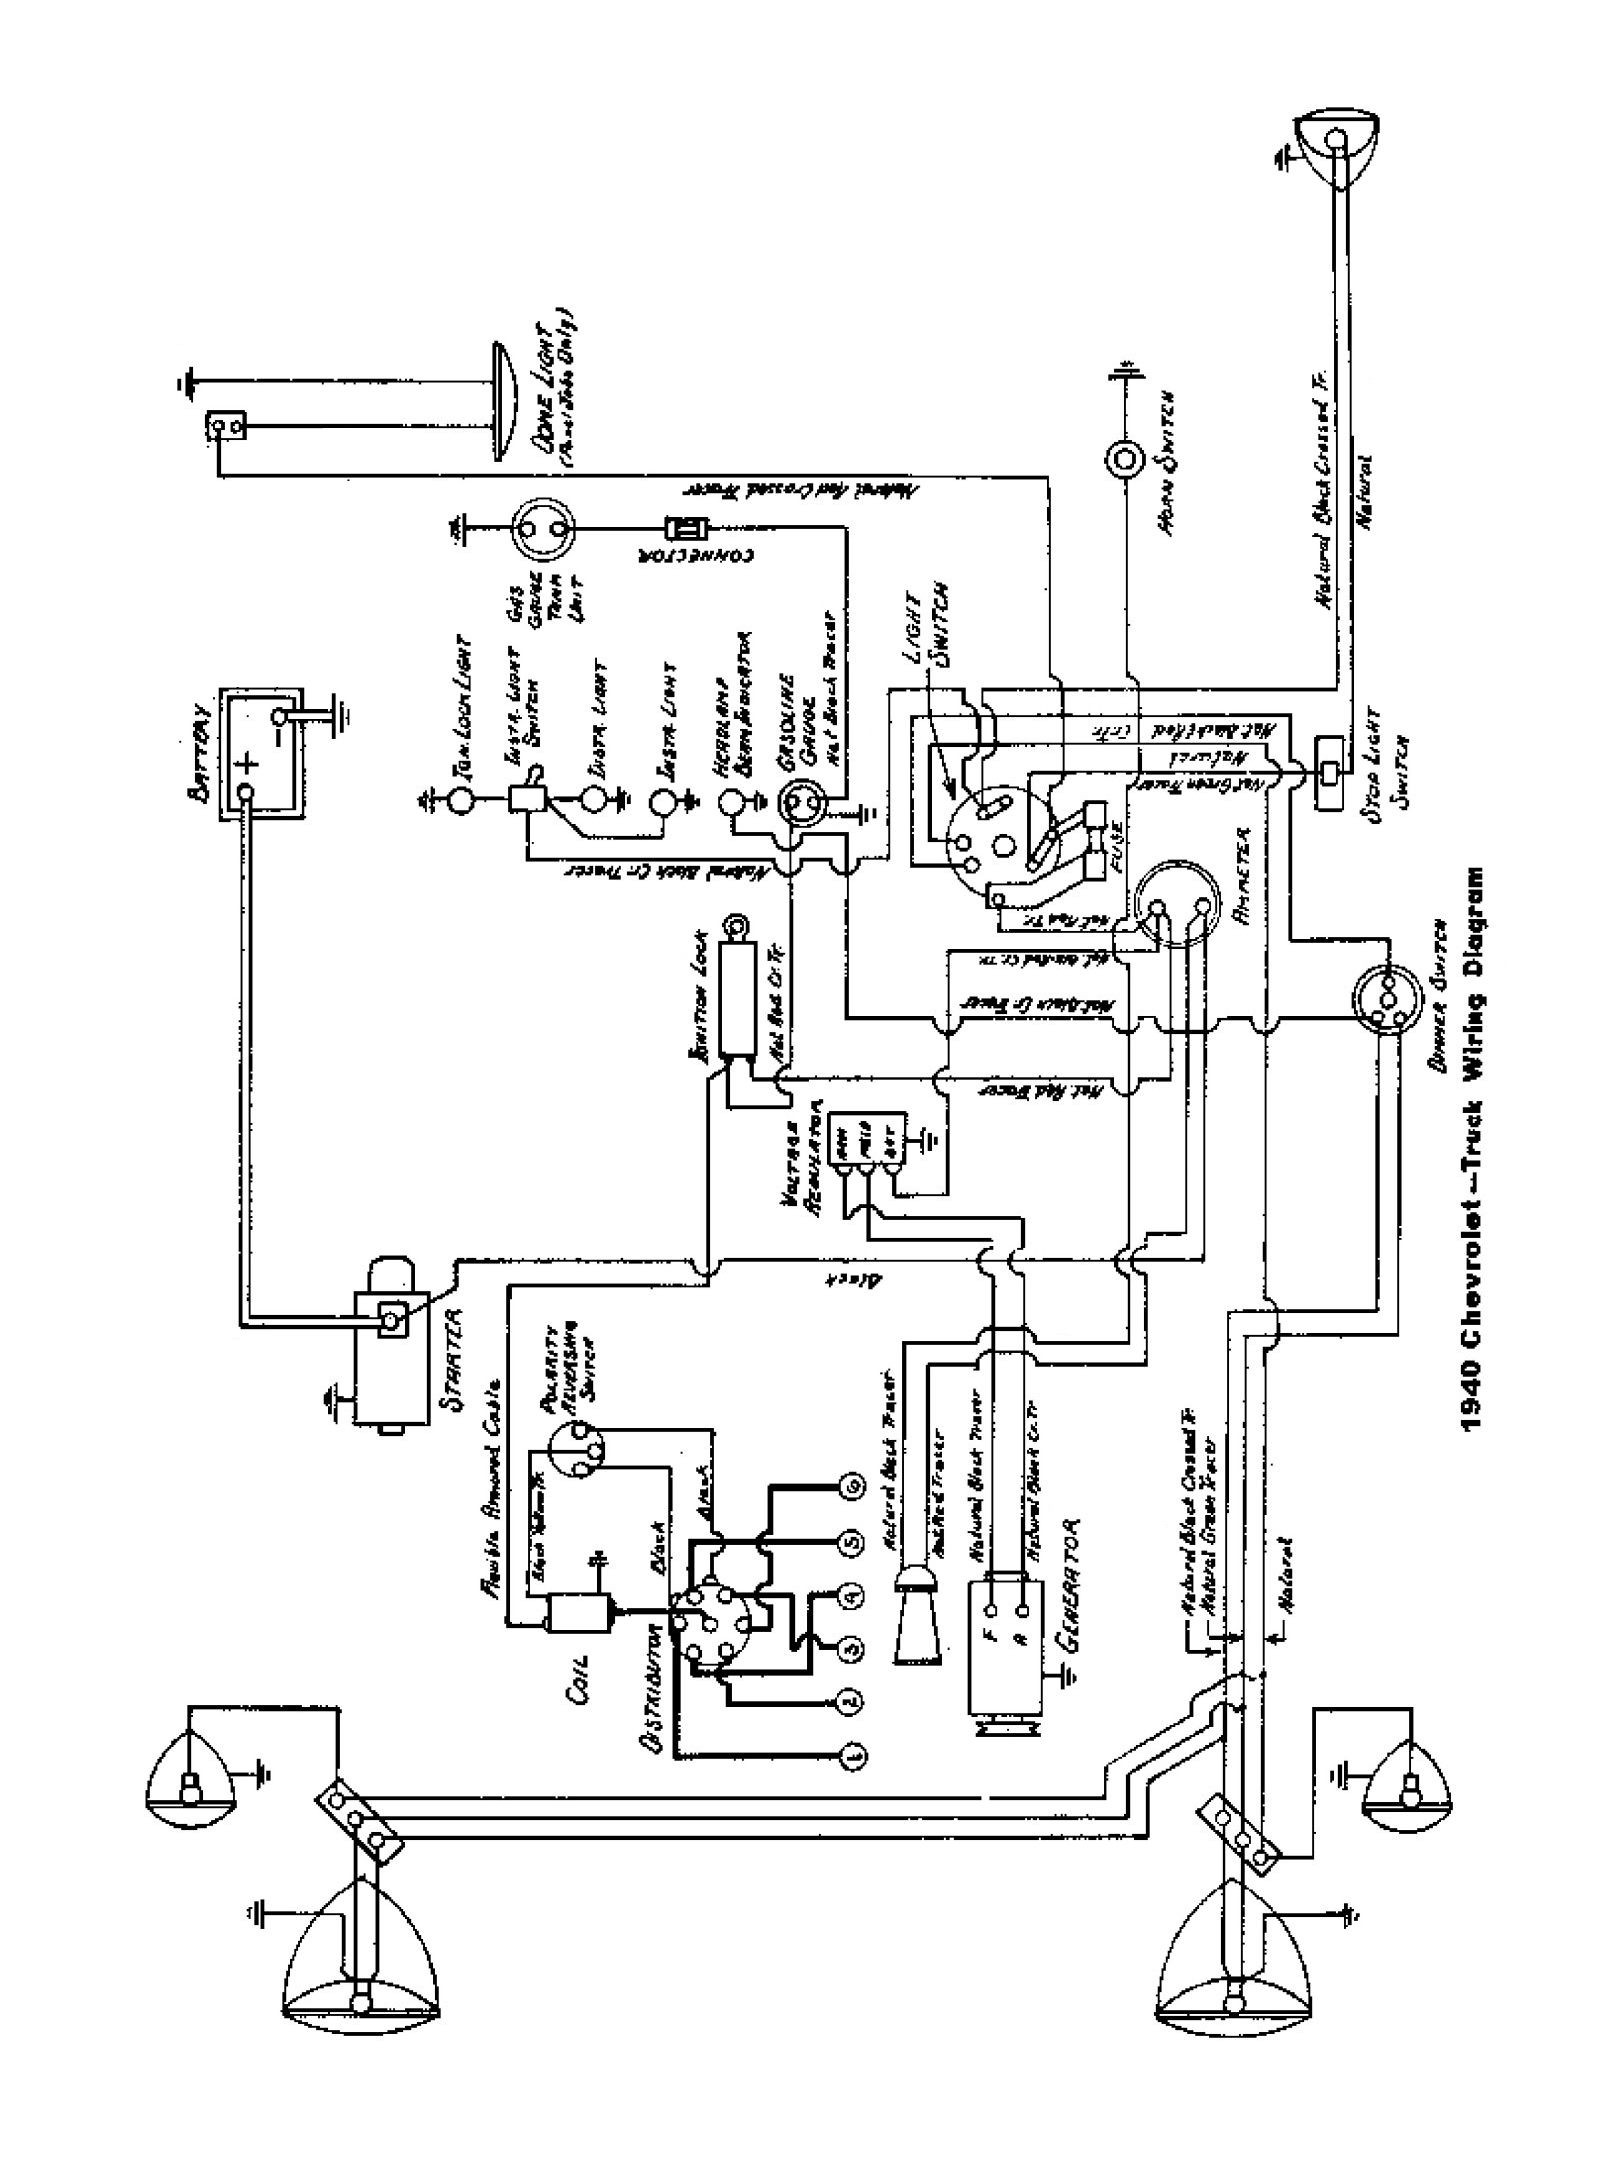 51 Chevy Truck Wiring Harness - Wiring Diagram on